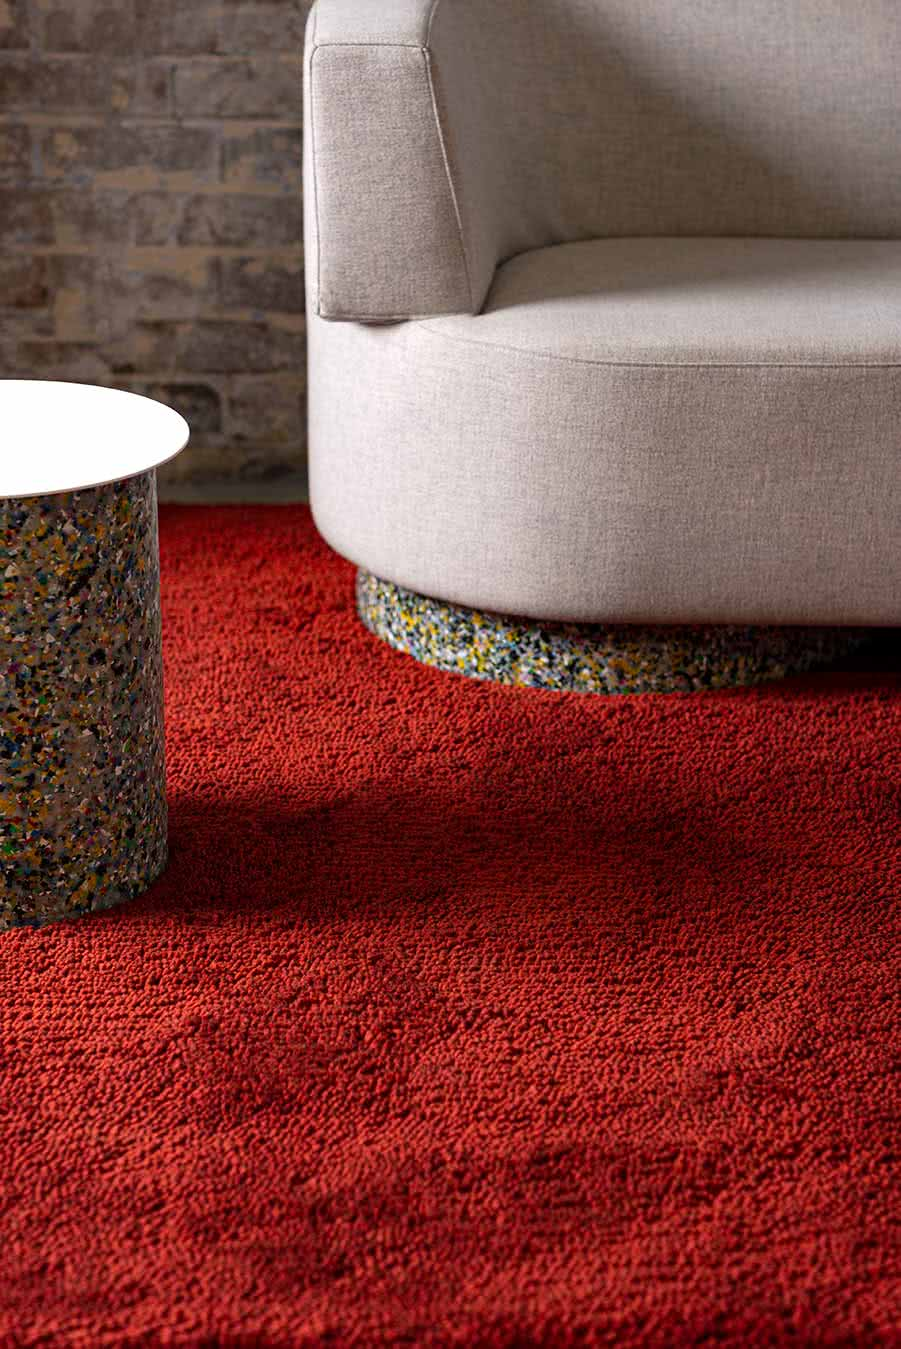 Living room view of textured Coral Shag rug in red colour